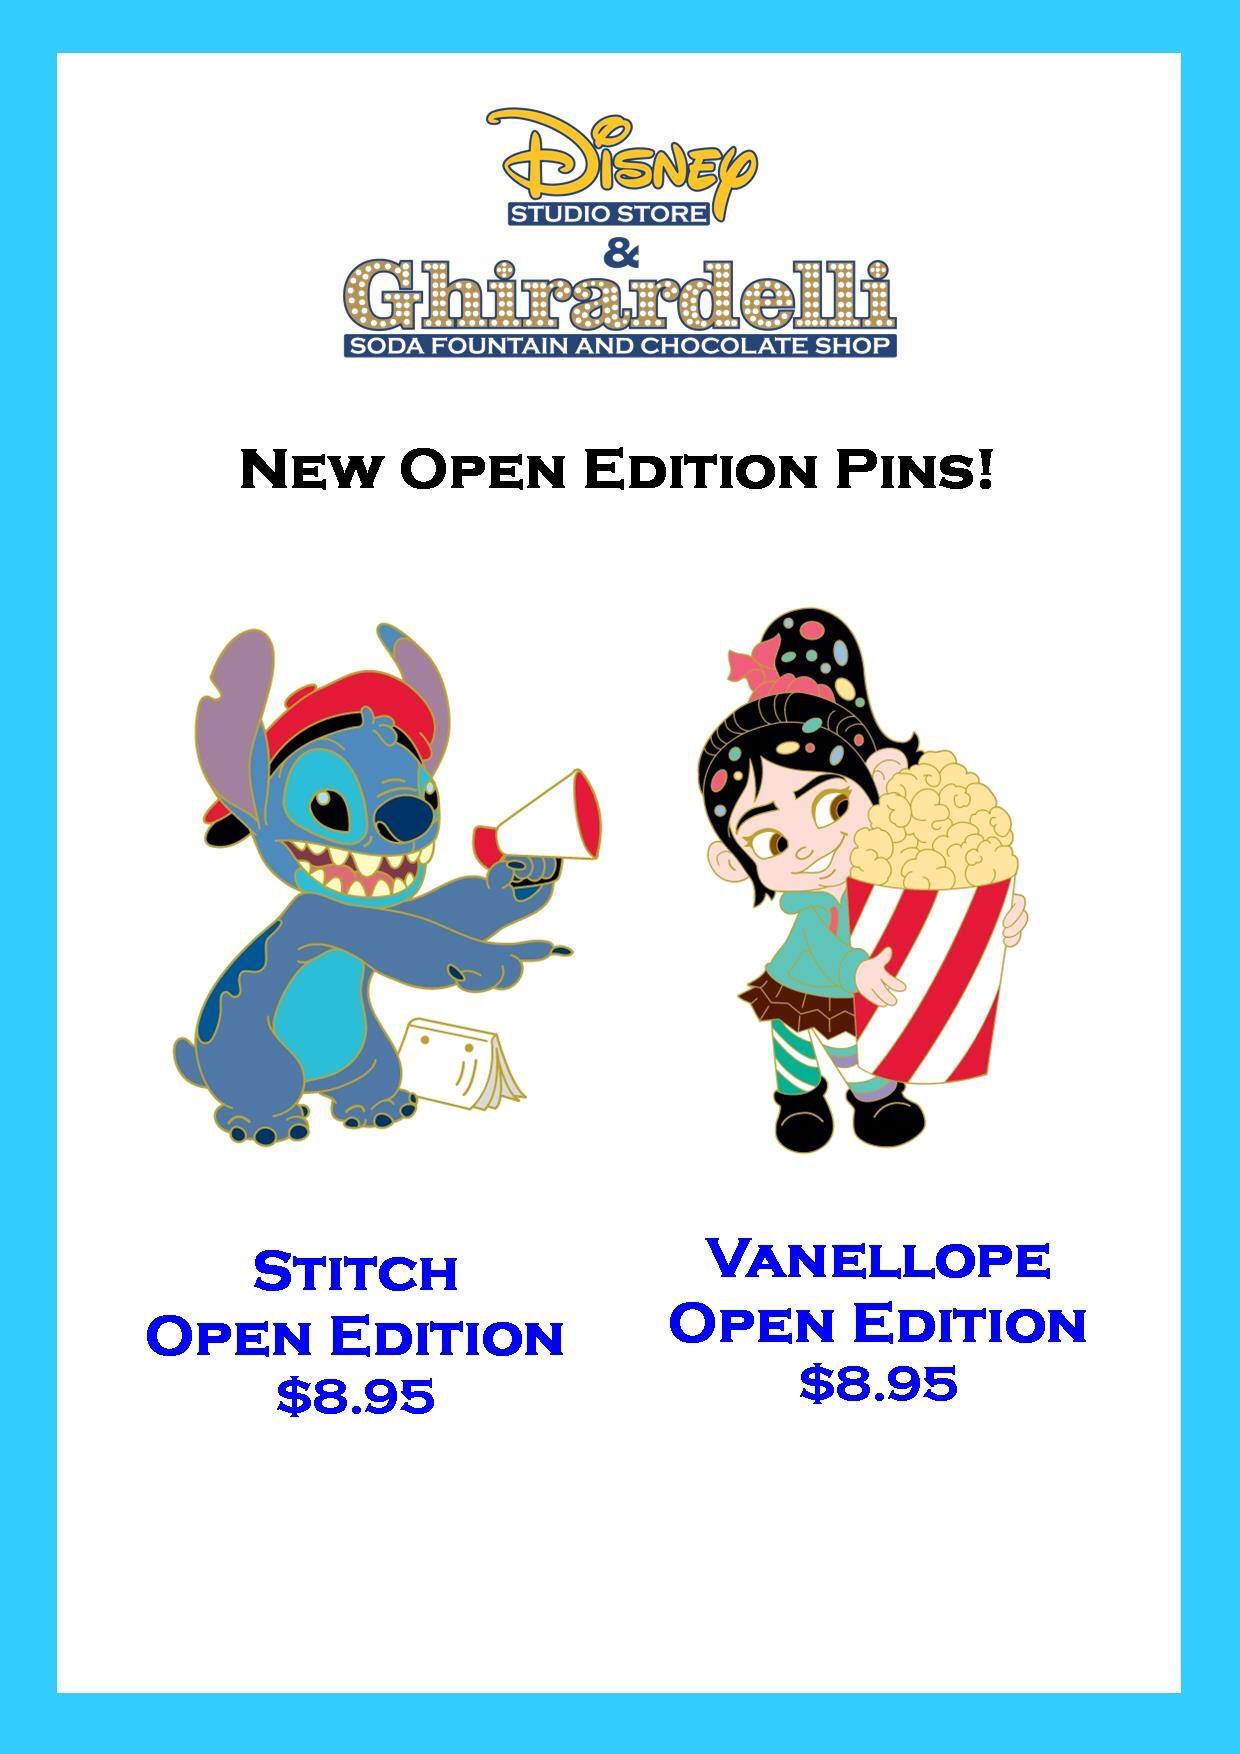 Two New Pins Released At Disney Studio Store